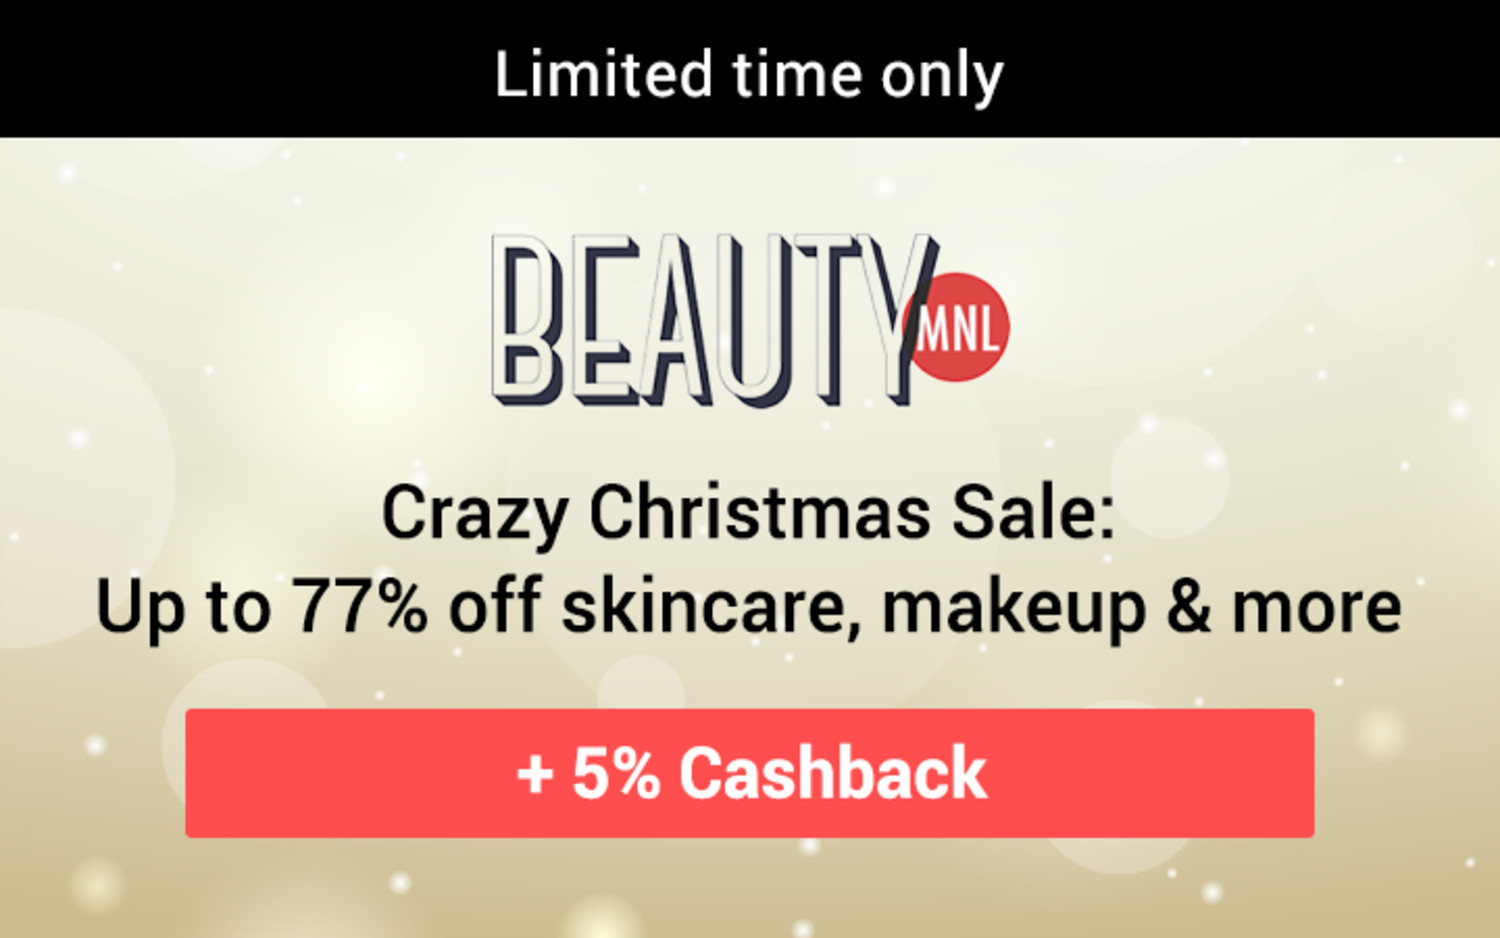 BeautyMNL | Crazy Christmas Sale: Up to 77% off skincare, makeup & more + 5% Cashback